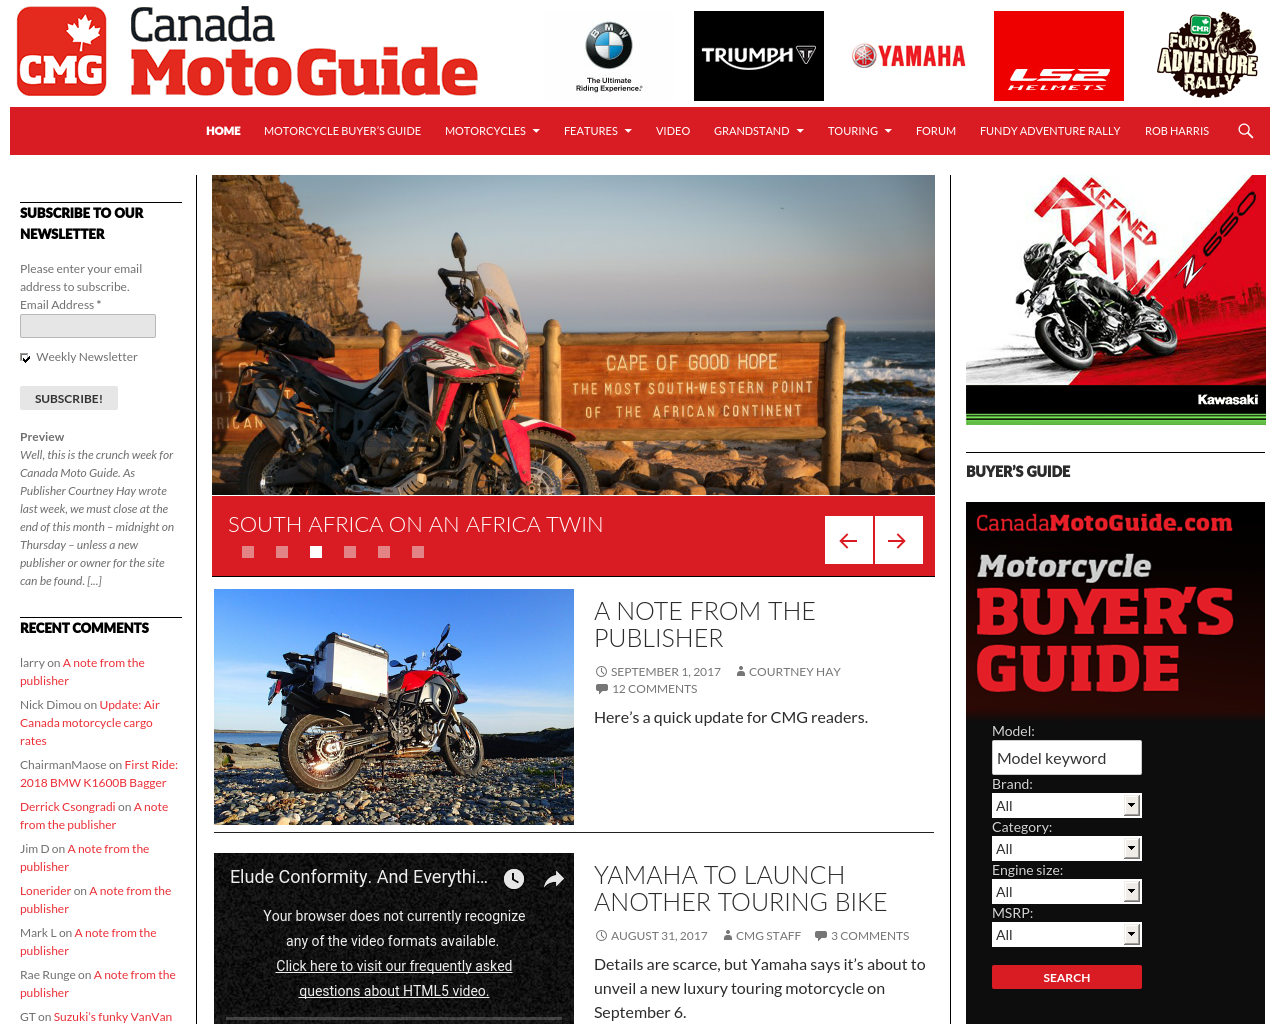 Canada-Moto-Guide-Advertising-Reviews-Pricing